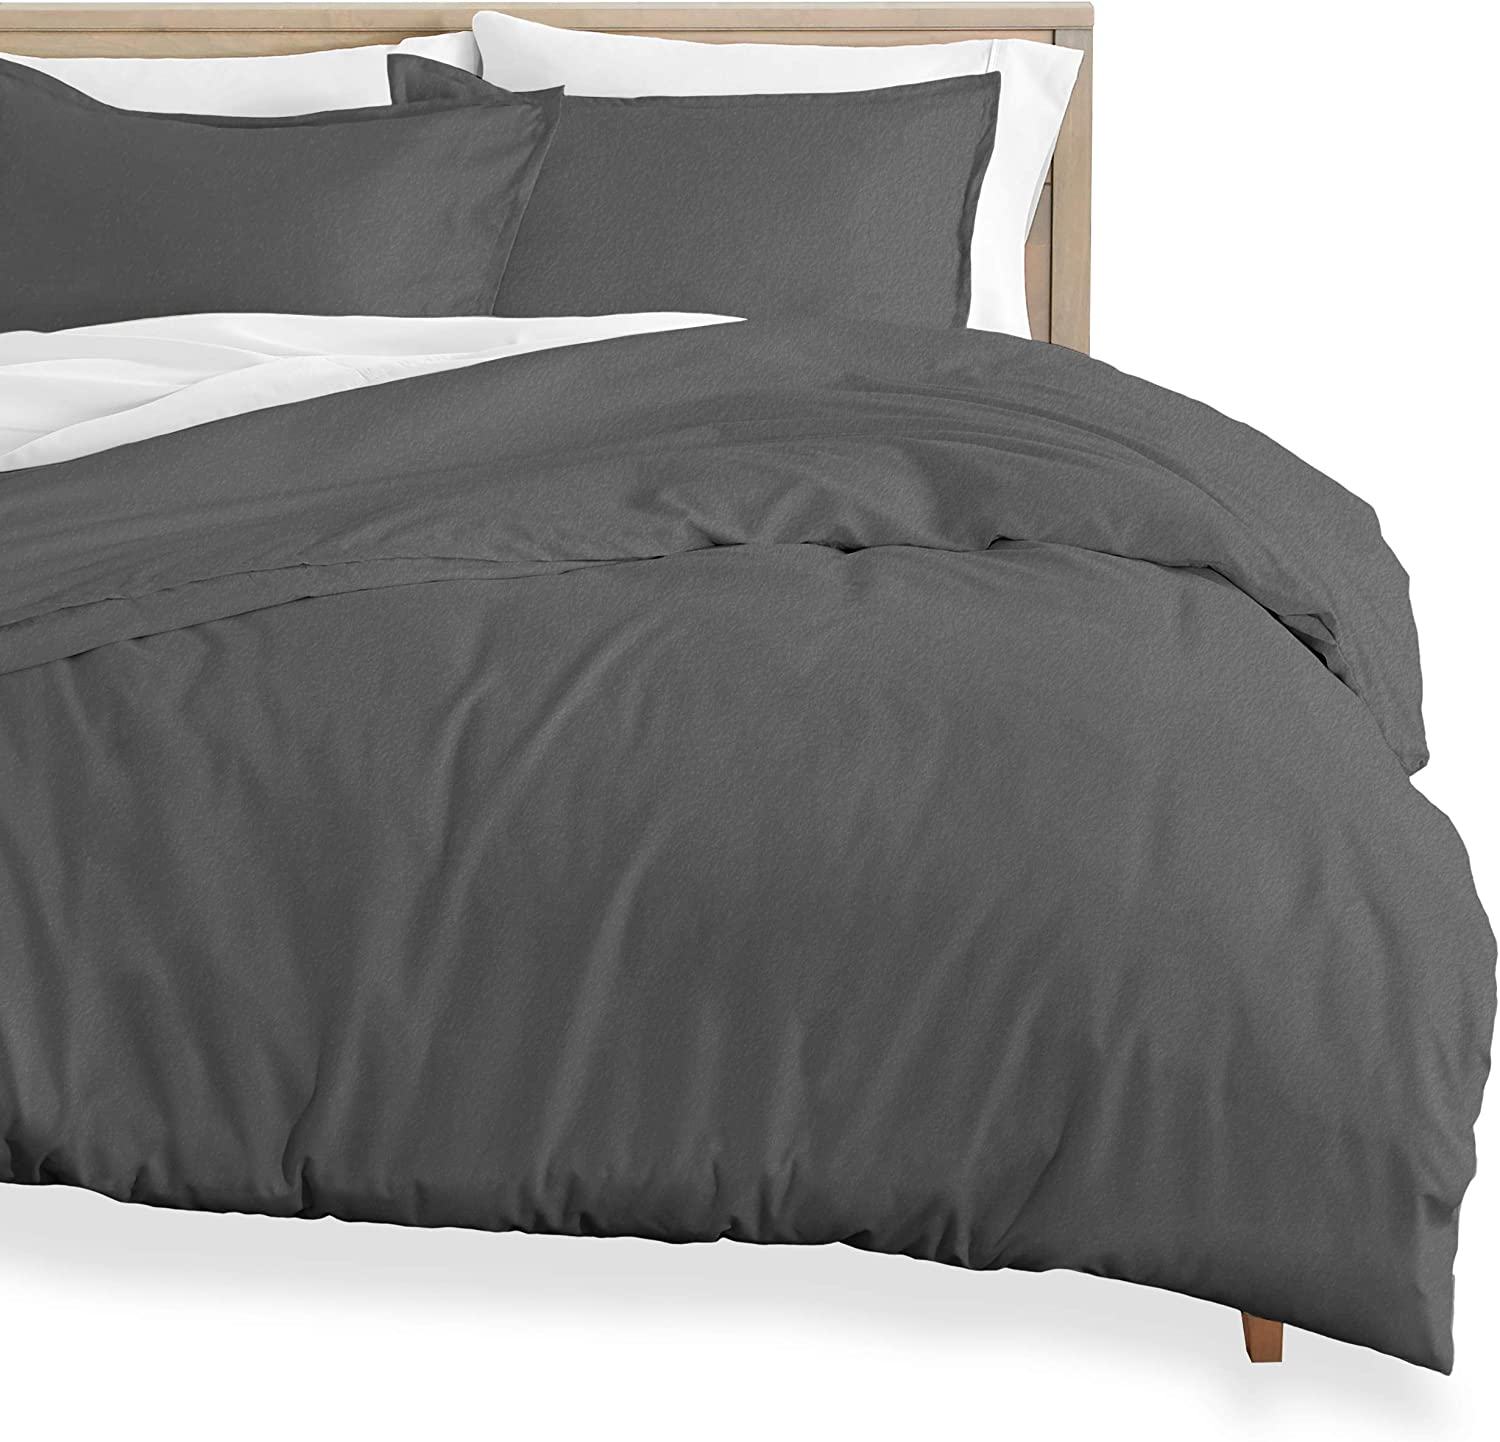 Bare Home Flannel Duvet Cover and Sham Set - Twin/Twin Extra Long - 100% Cotton, Velvety Soft Heavyweight, Double Brushed Flannel (Twin/Twin XL, Grey)